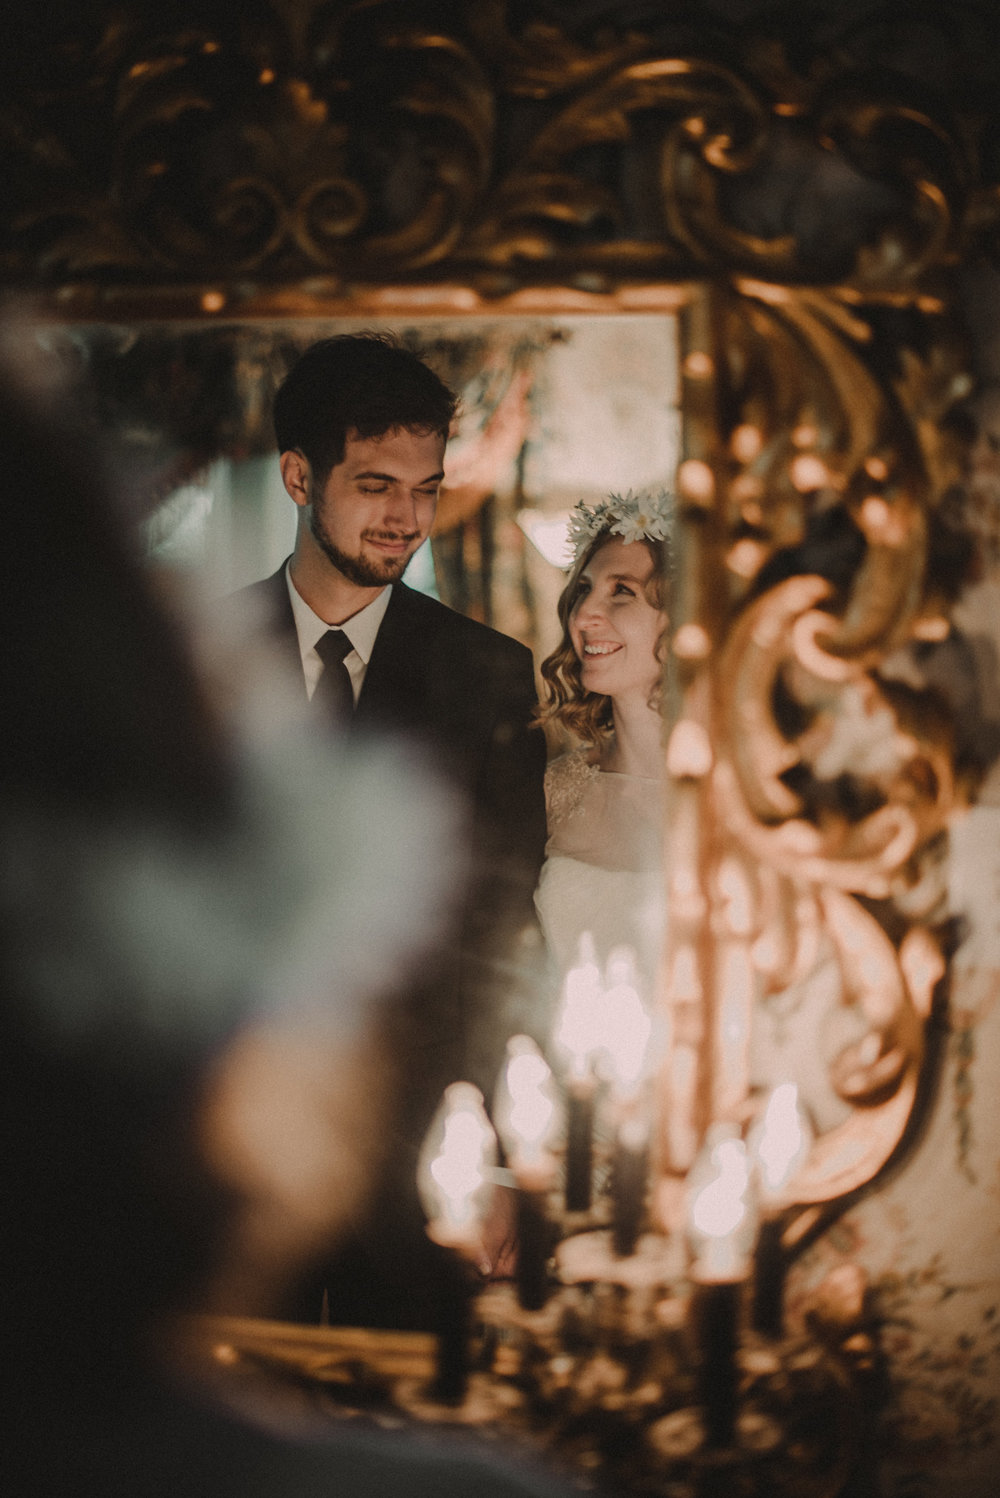 Bride and groom looking in mirror